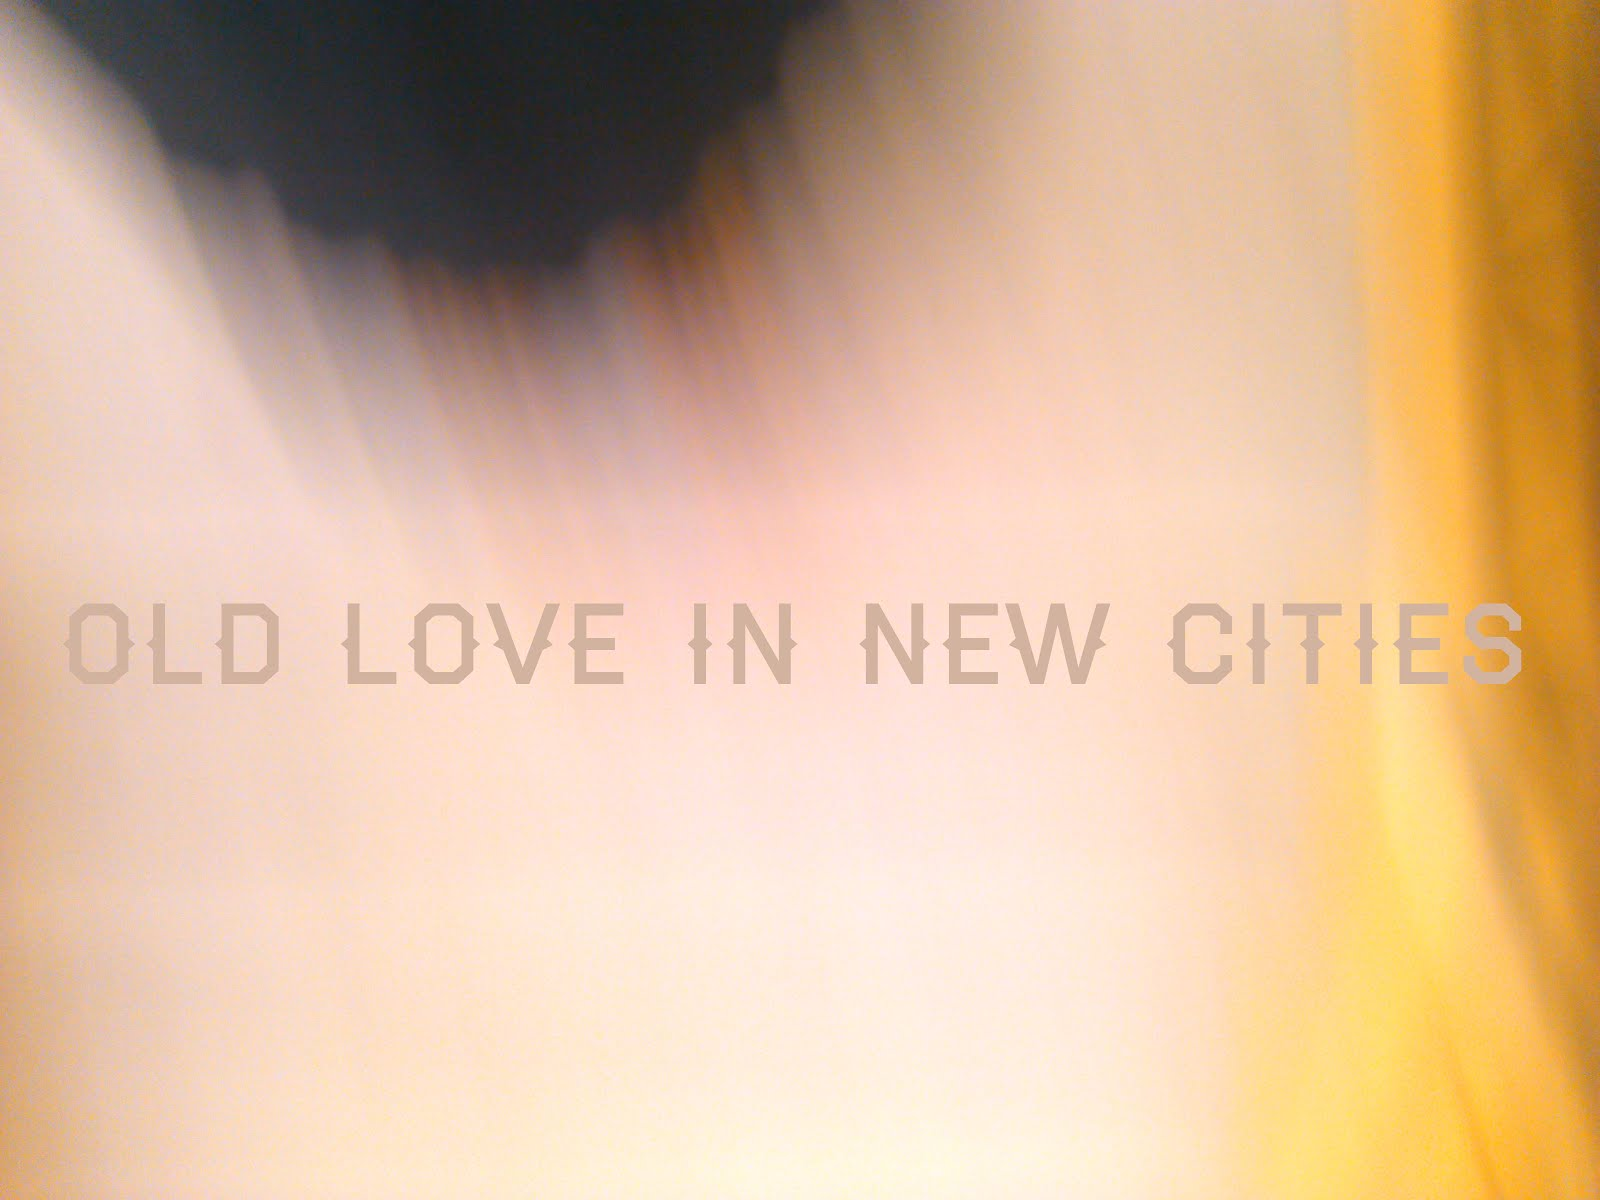 old love in new cities